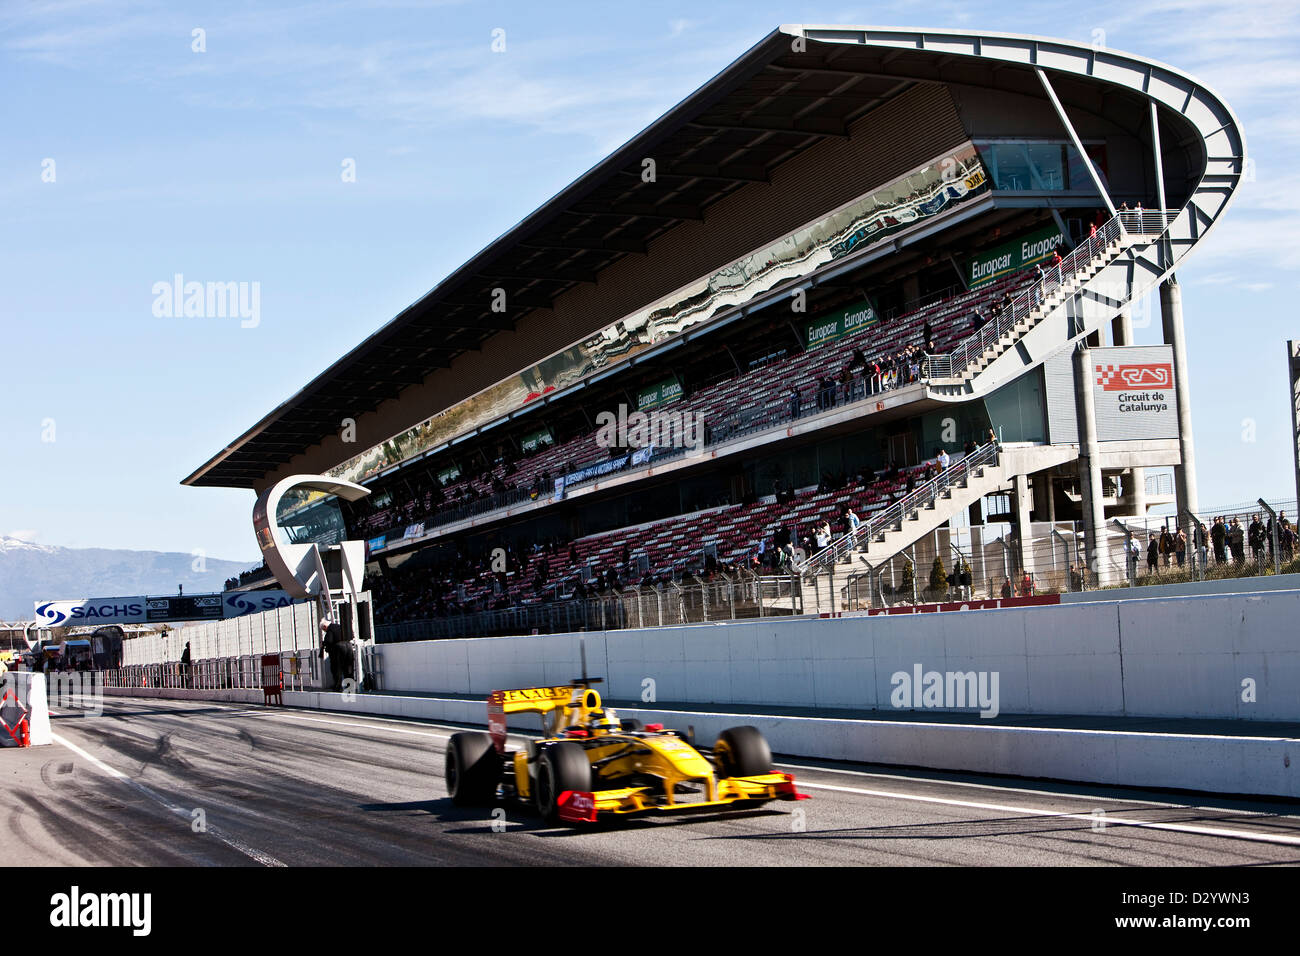 Formula one racing car and grandstand, Barcelona, 27 02 10 - Stock Image